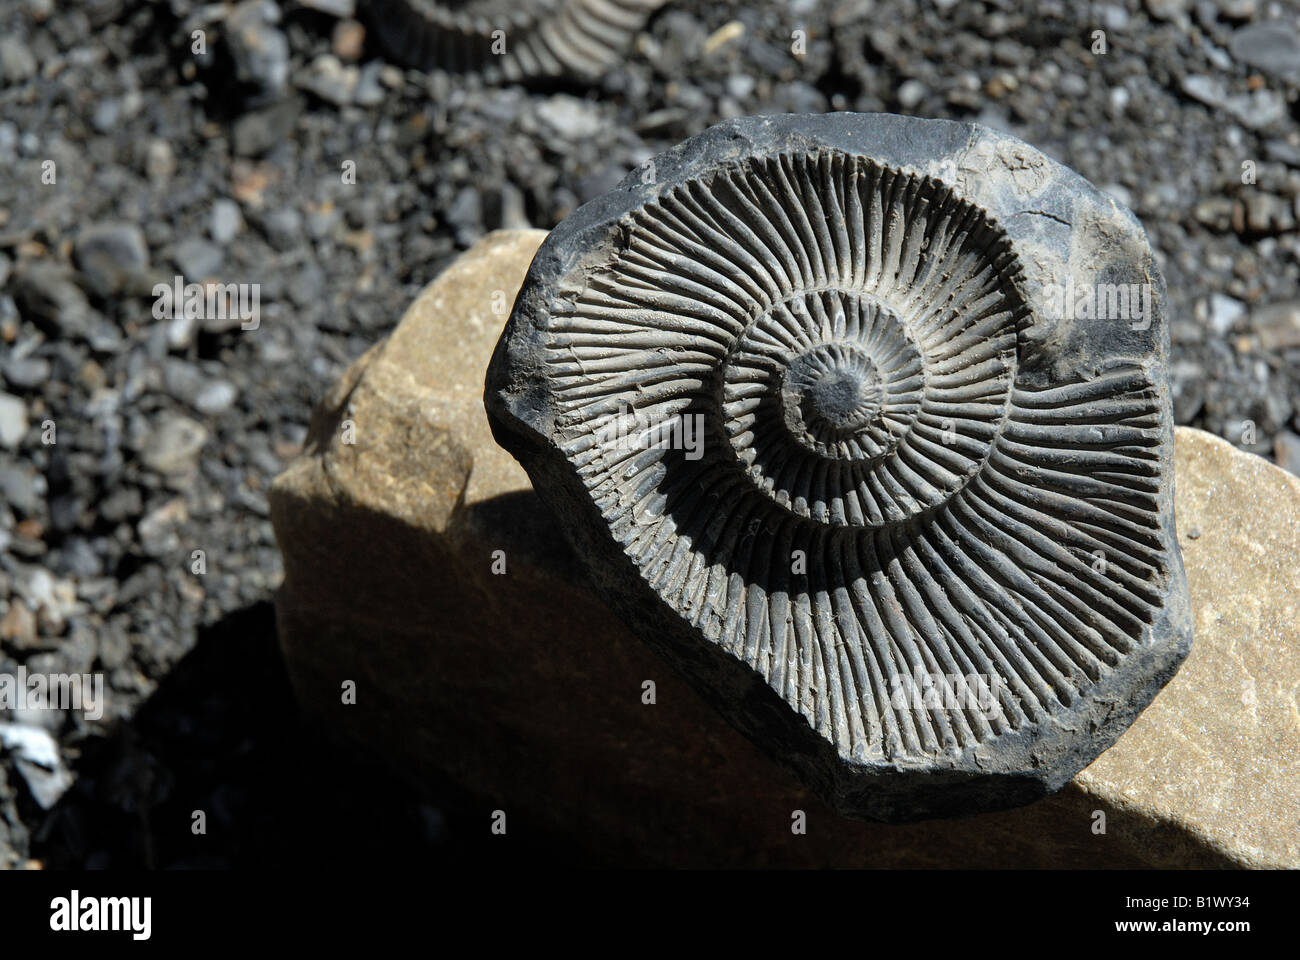 Fossil of primordial aquatic life ammonite found in Langza in Spiti valley, evidence of it being submerged under - Stock Image